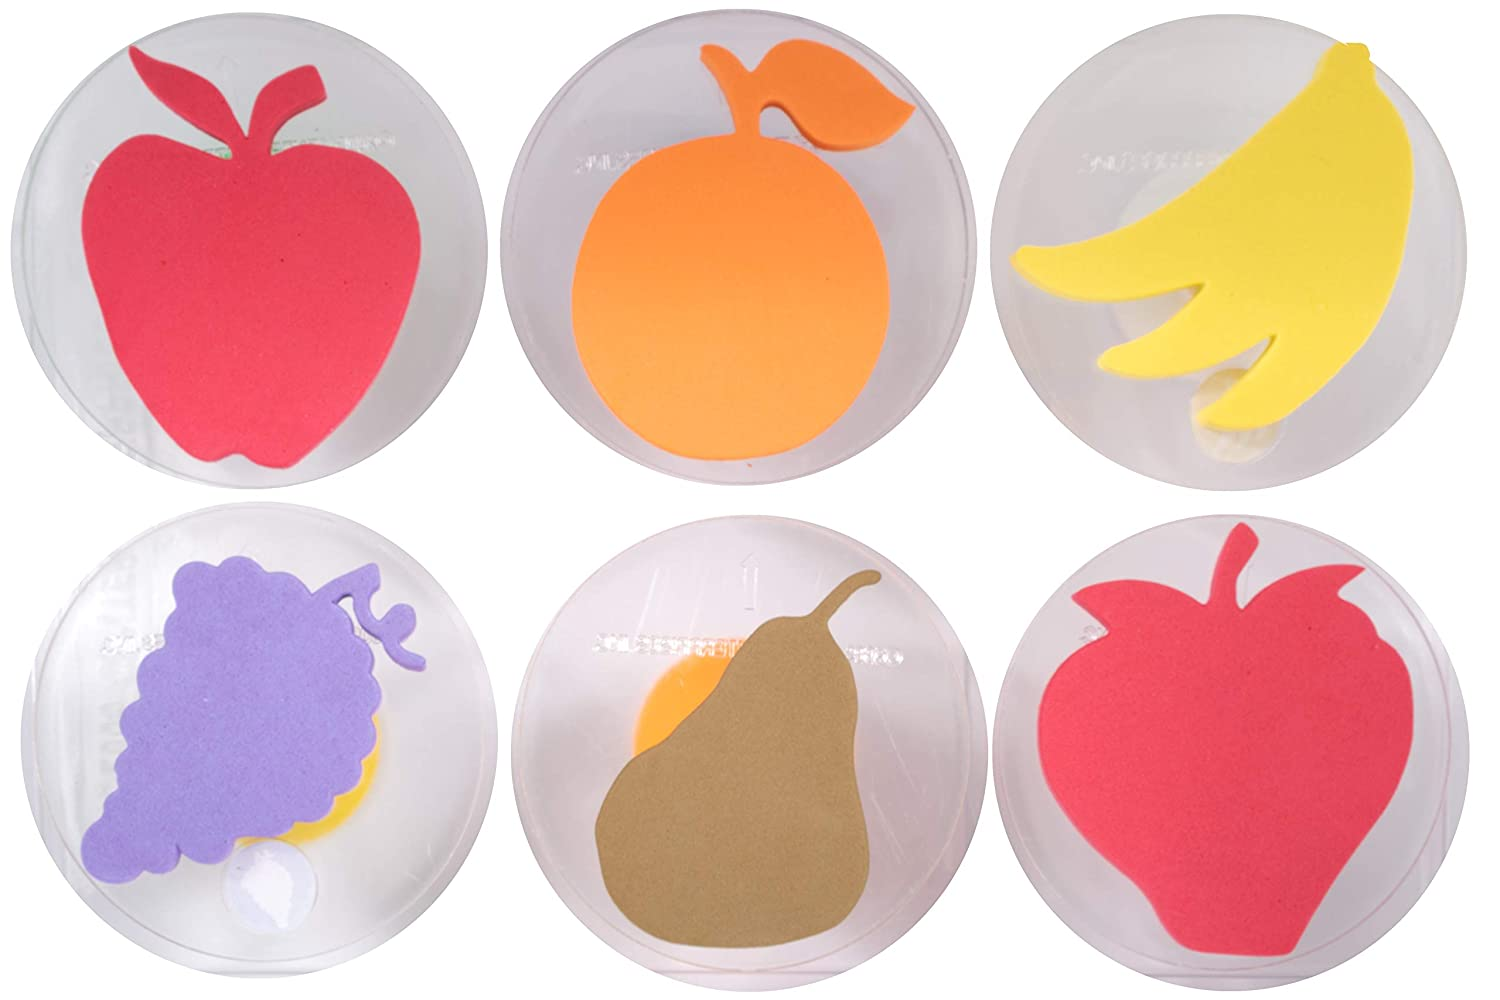 Ready 2 Learn Giant Stampers - Fruit - Set of 6 - Easy to Hold Foam Stamps for Kids - Arts and Crafts Stamps for Displays, Posters, Signs and DIY Projects